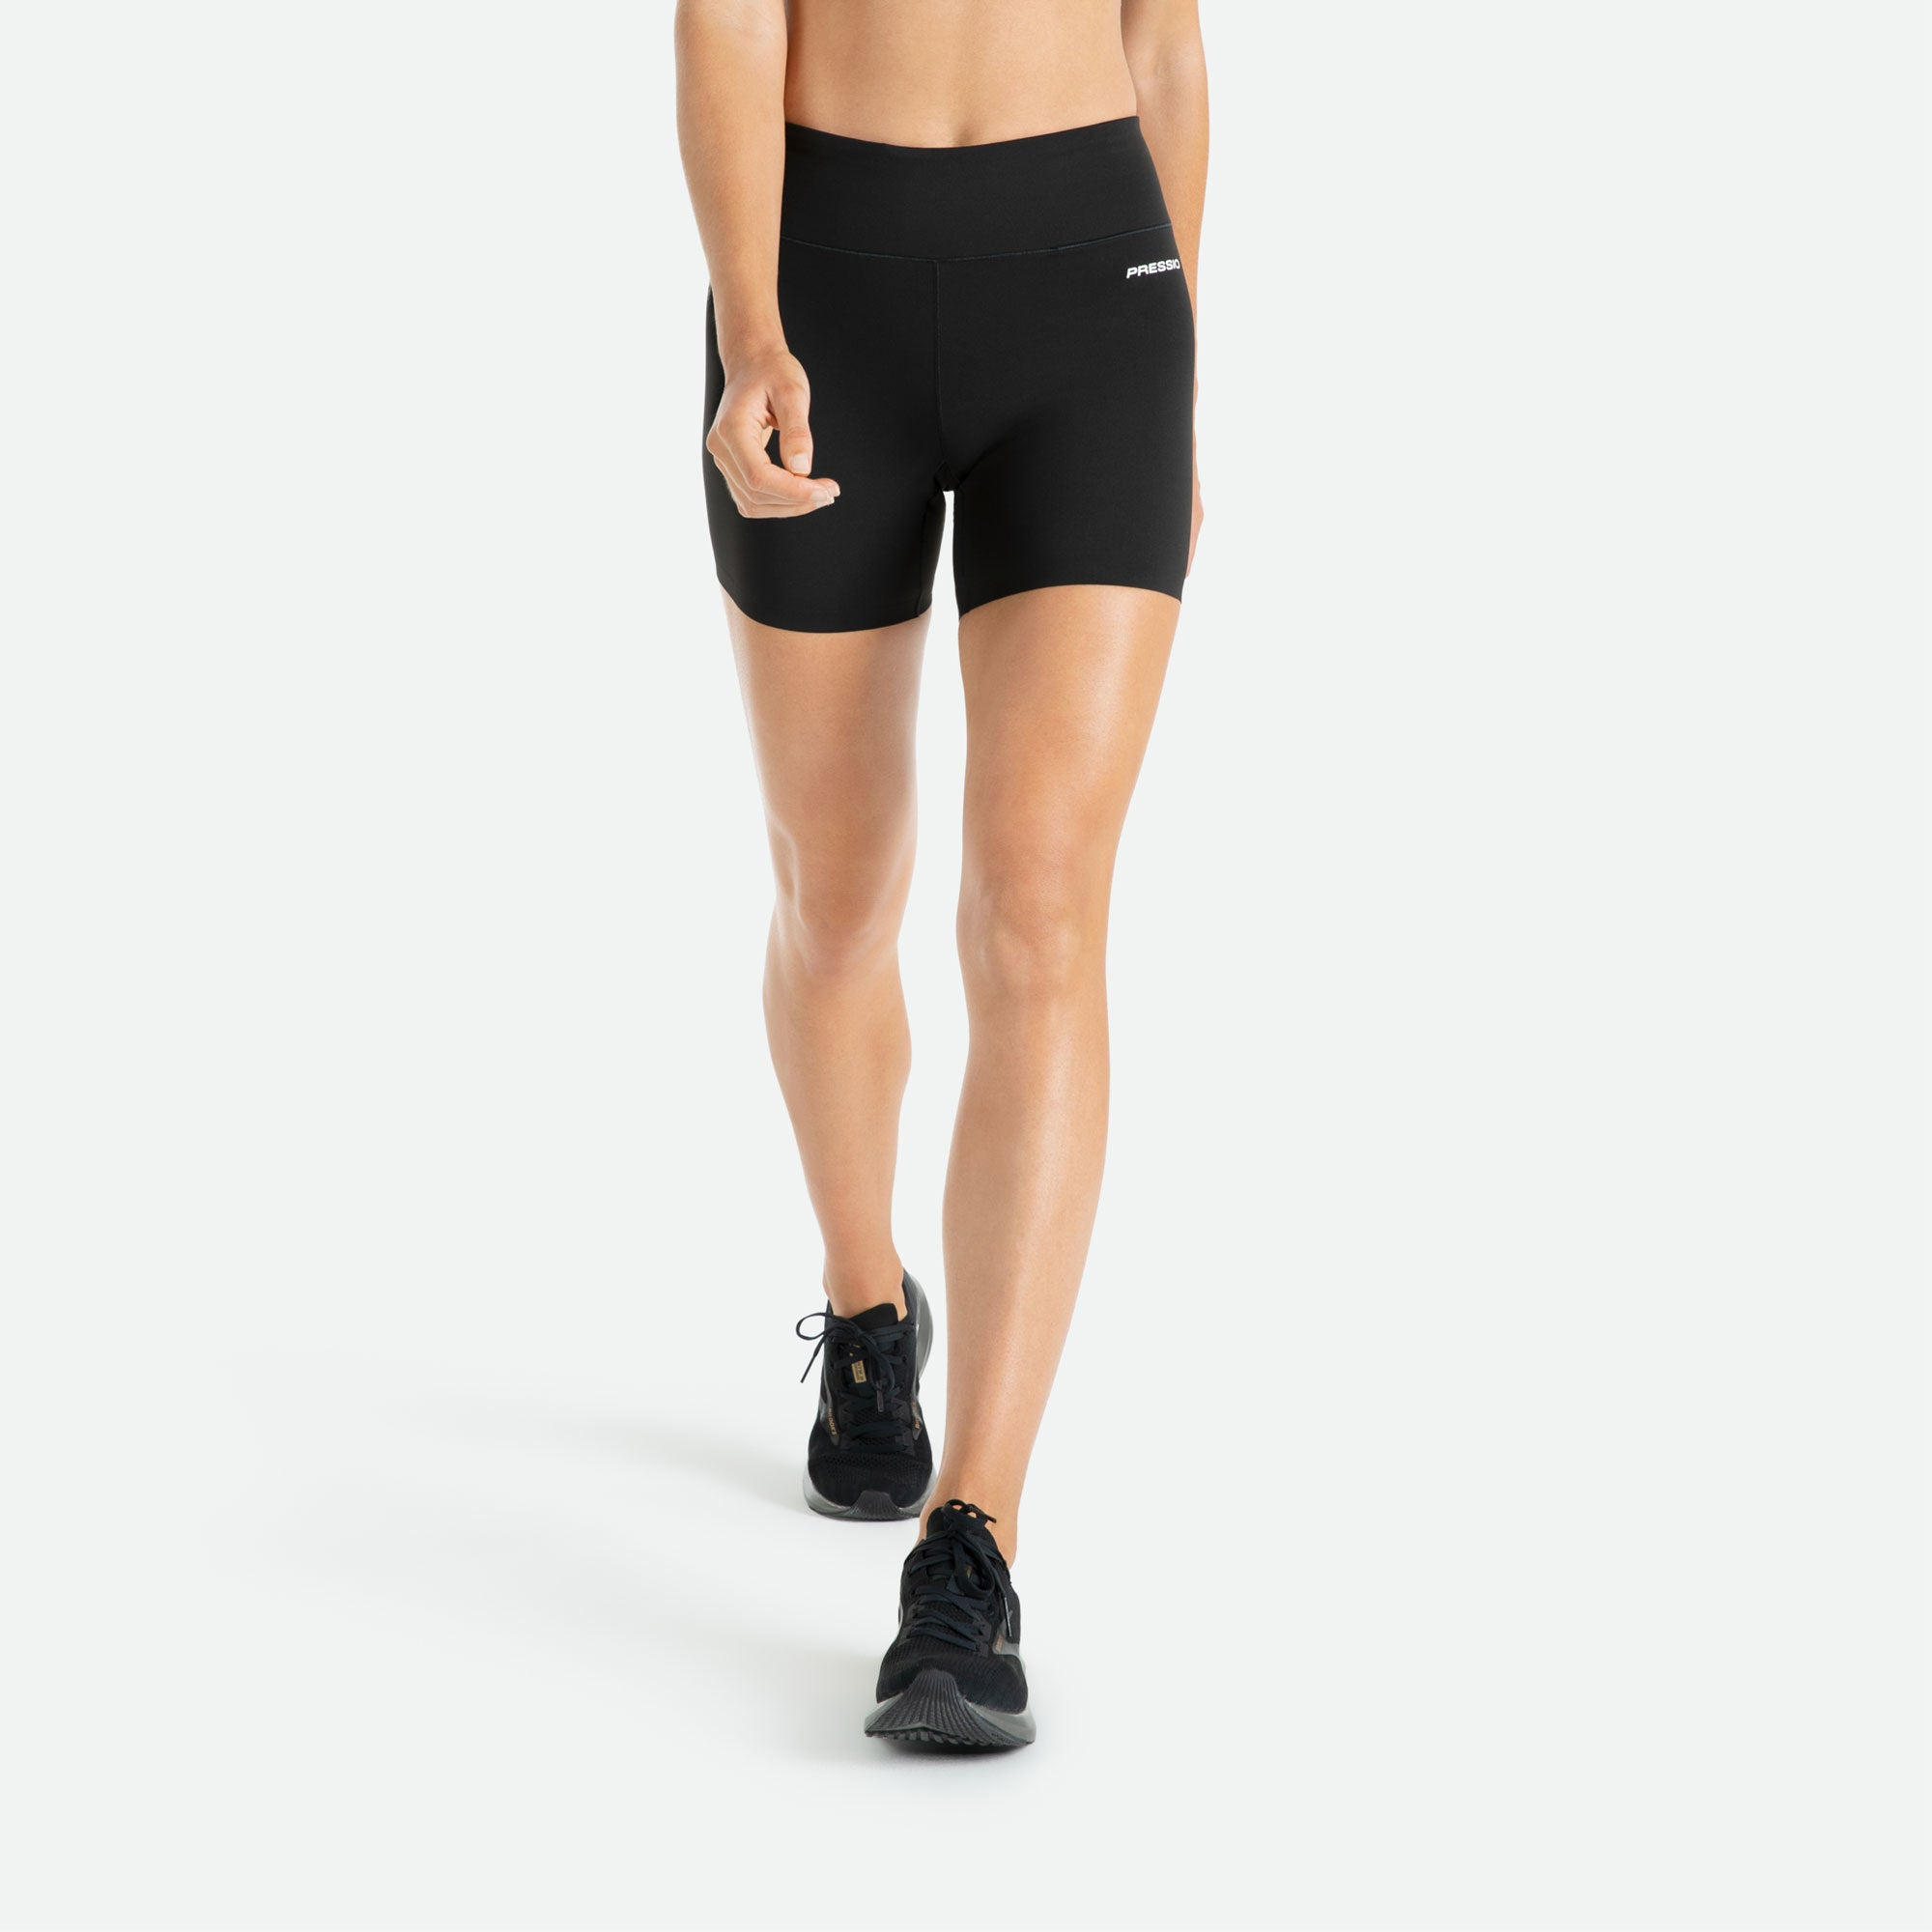 Pressio women's mid rise 3'' compression short made of high filament nylon yarns for comfort, moisture management, and durability.